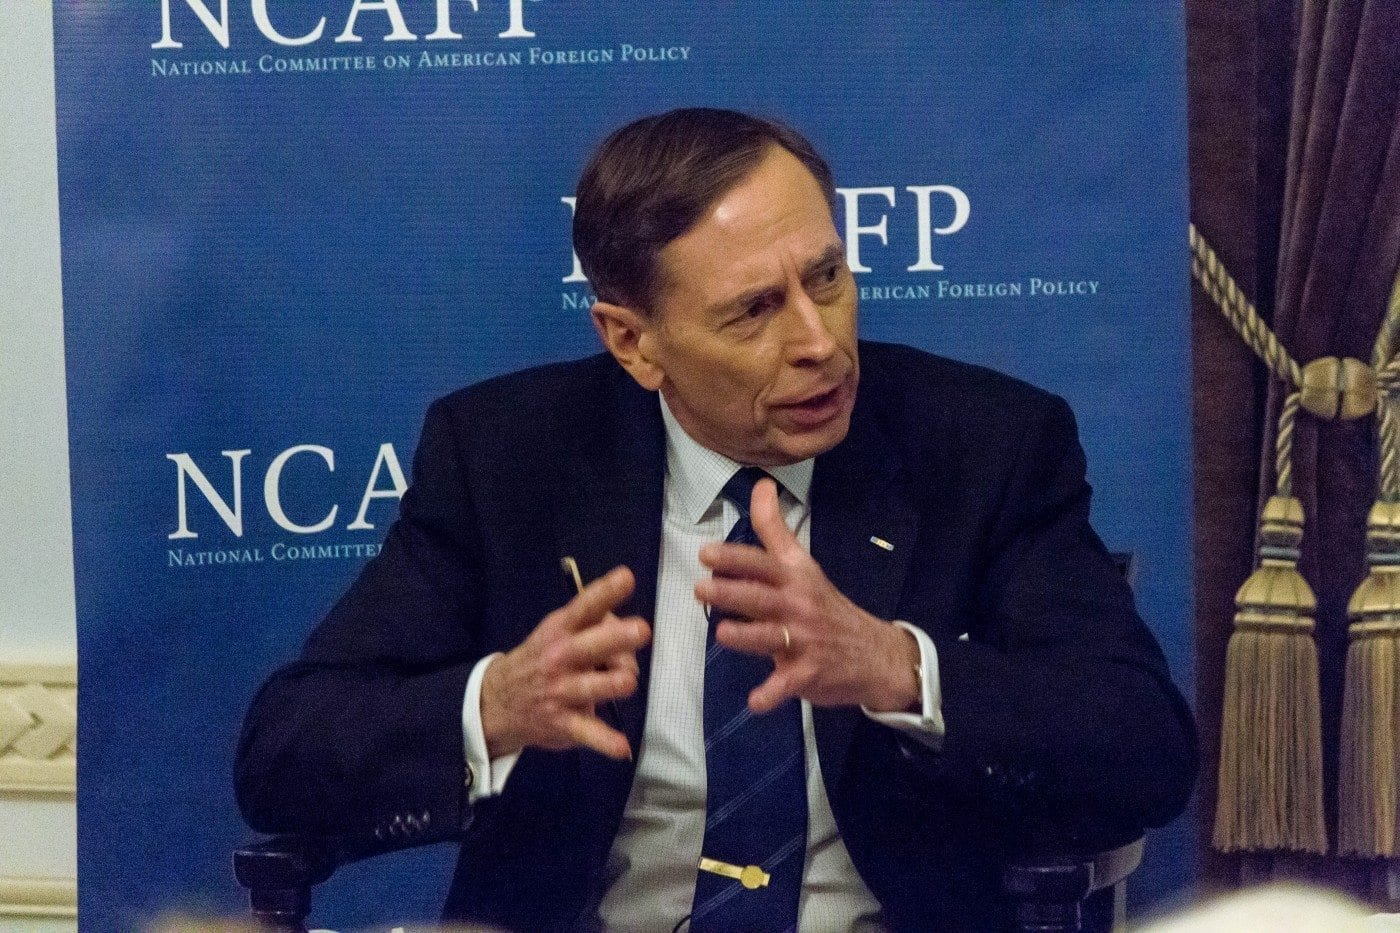 General Petraeus makes a point